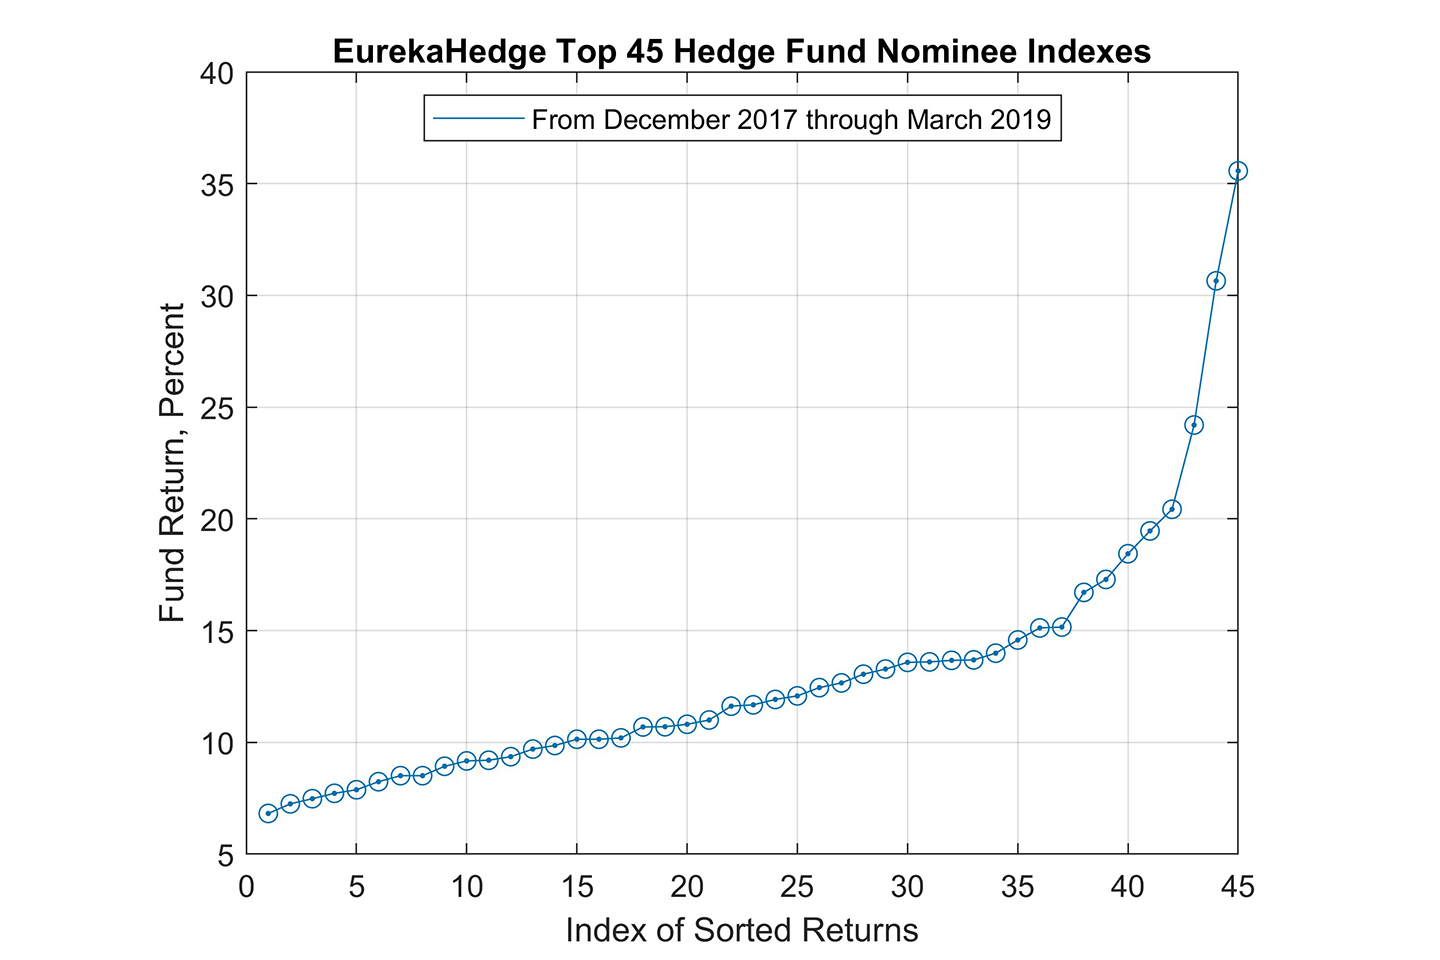 eurekahedge top 45 fund nominee indexes, fund return, index of sorted returns, blue graph